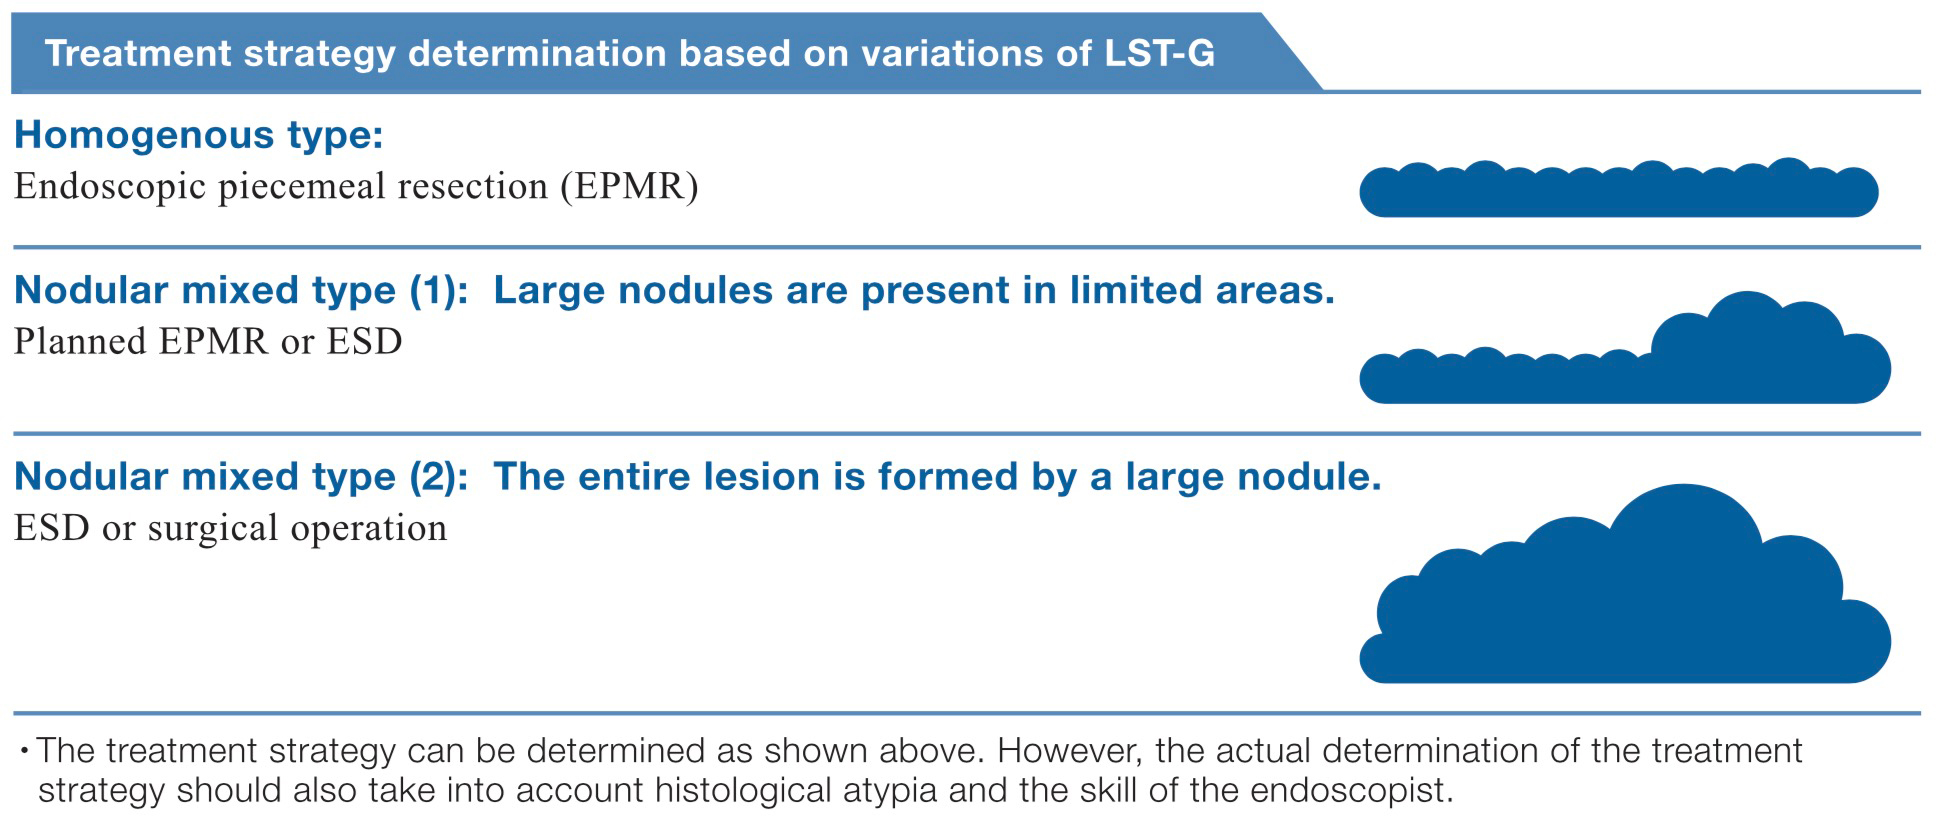 Treatment strategy determination based on variations of LST-G